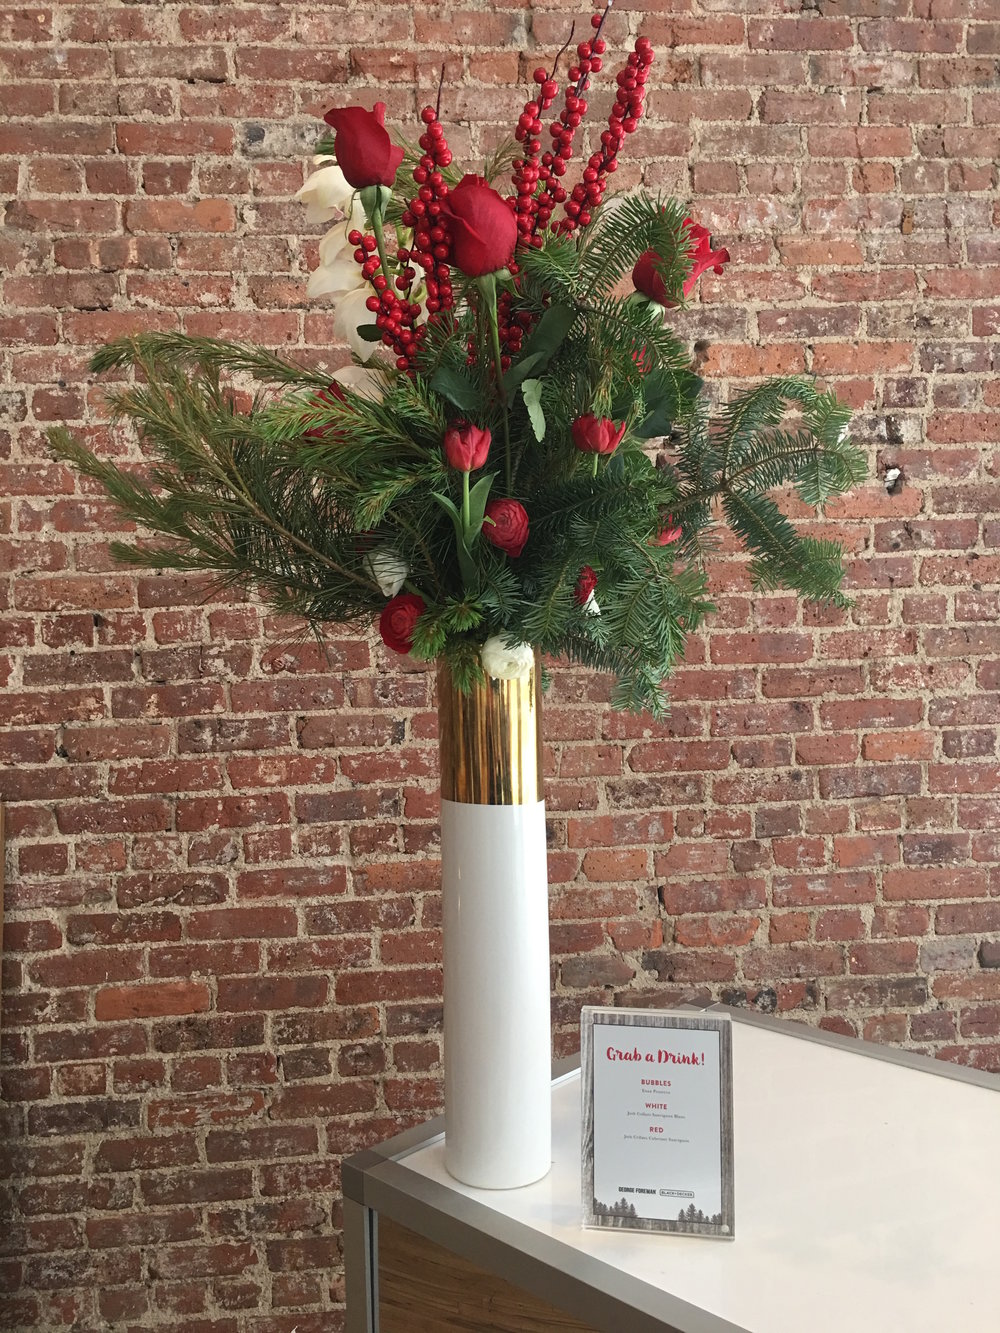 Spectrum Brands Holiday Product Showcase